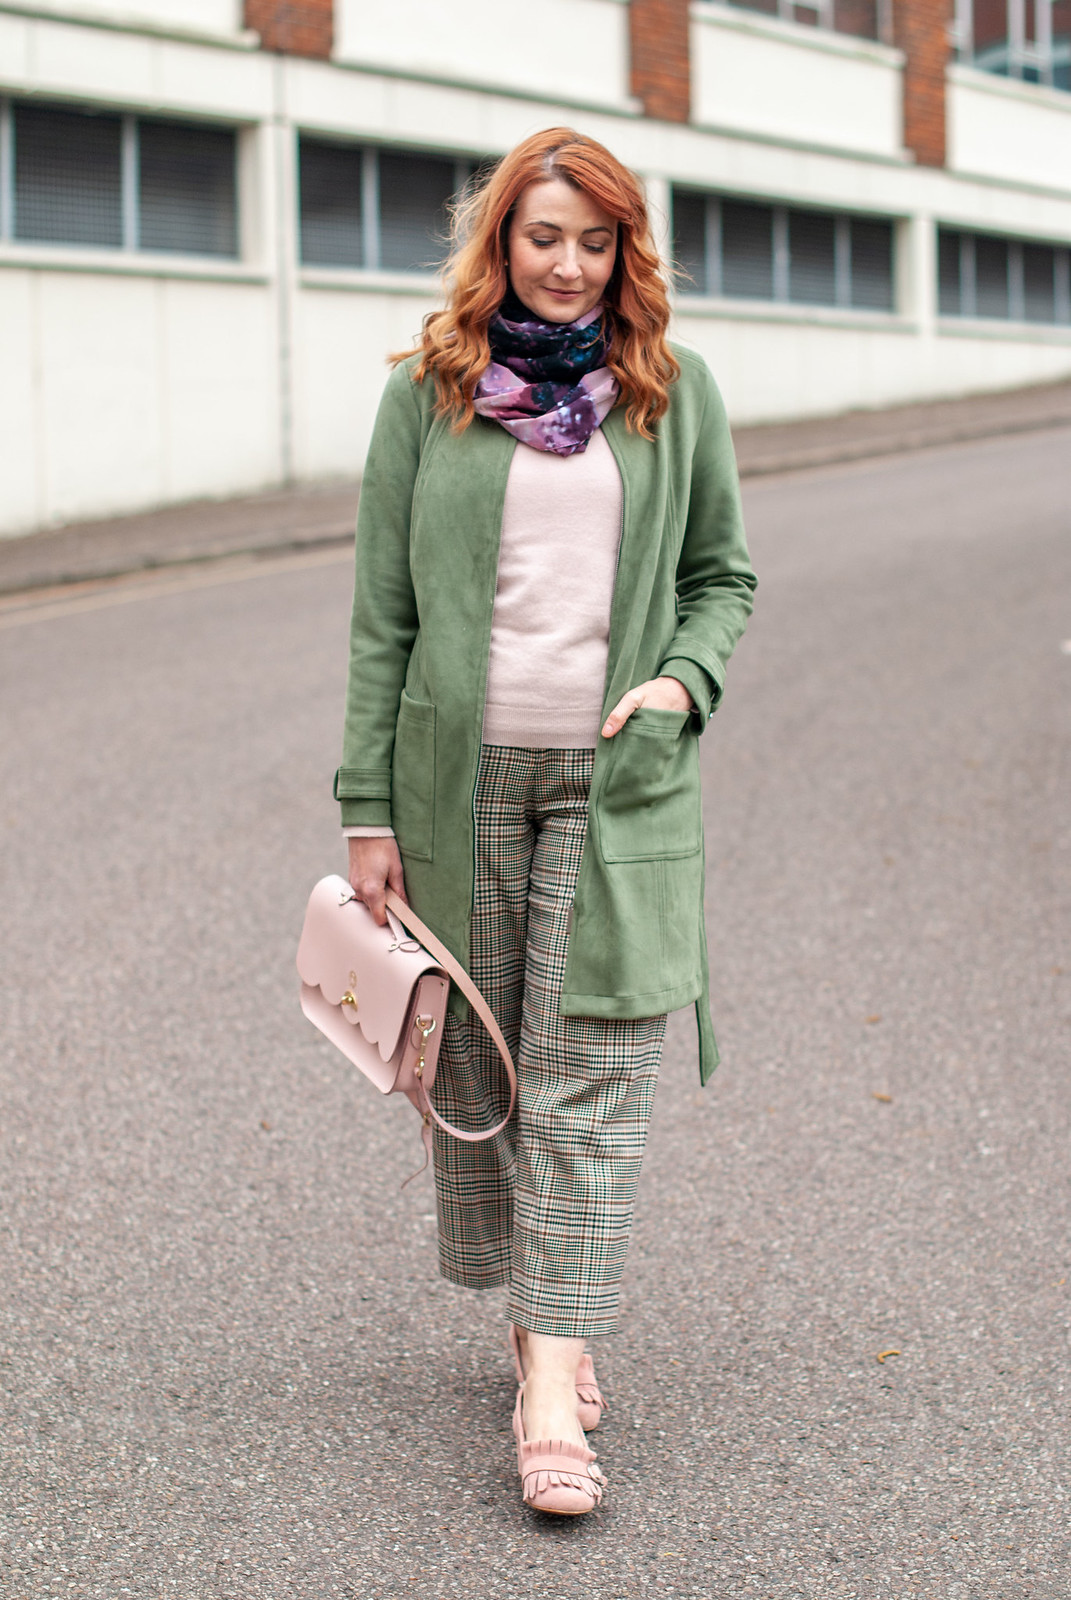 Smart Dressing in Khaki and Pink for Cooler Spring Days | Not Dressed As Lamb, over 40 style / over 40 fashion / over 40 outfits